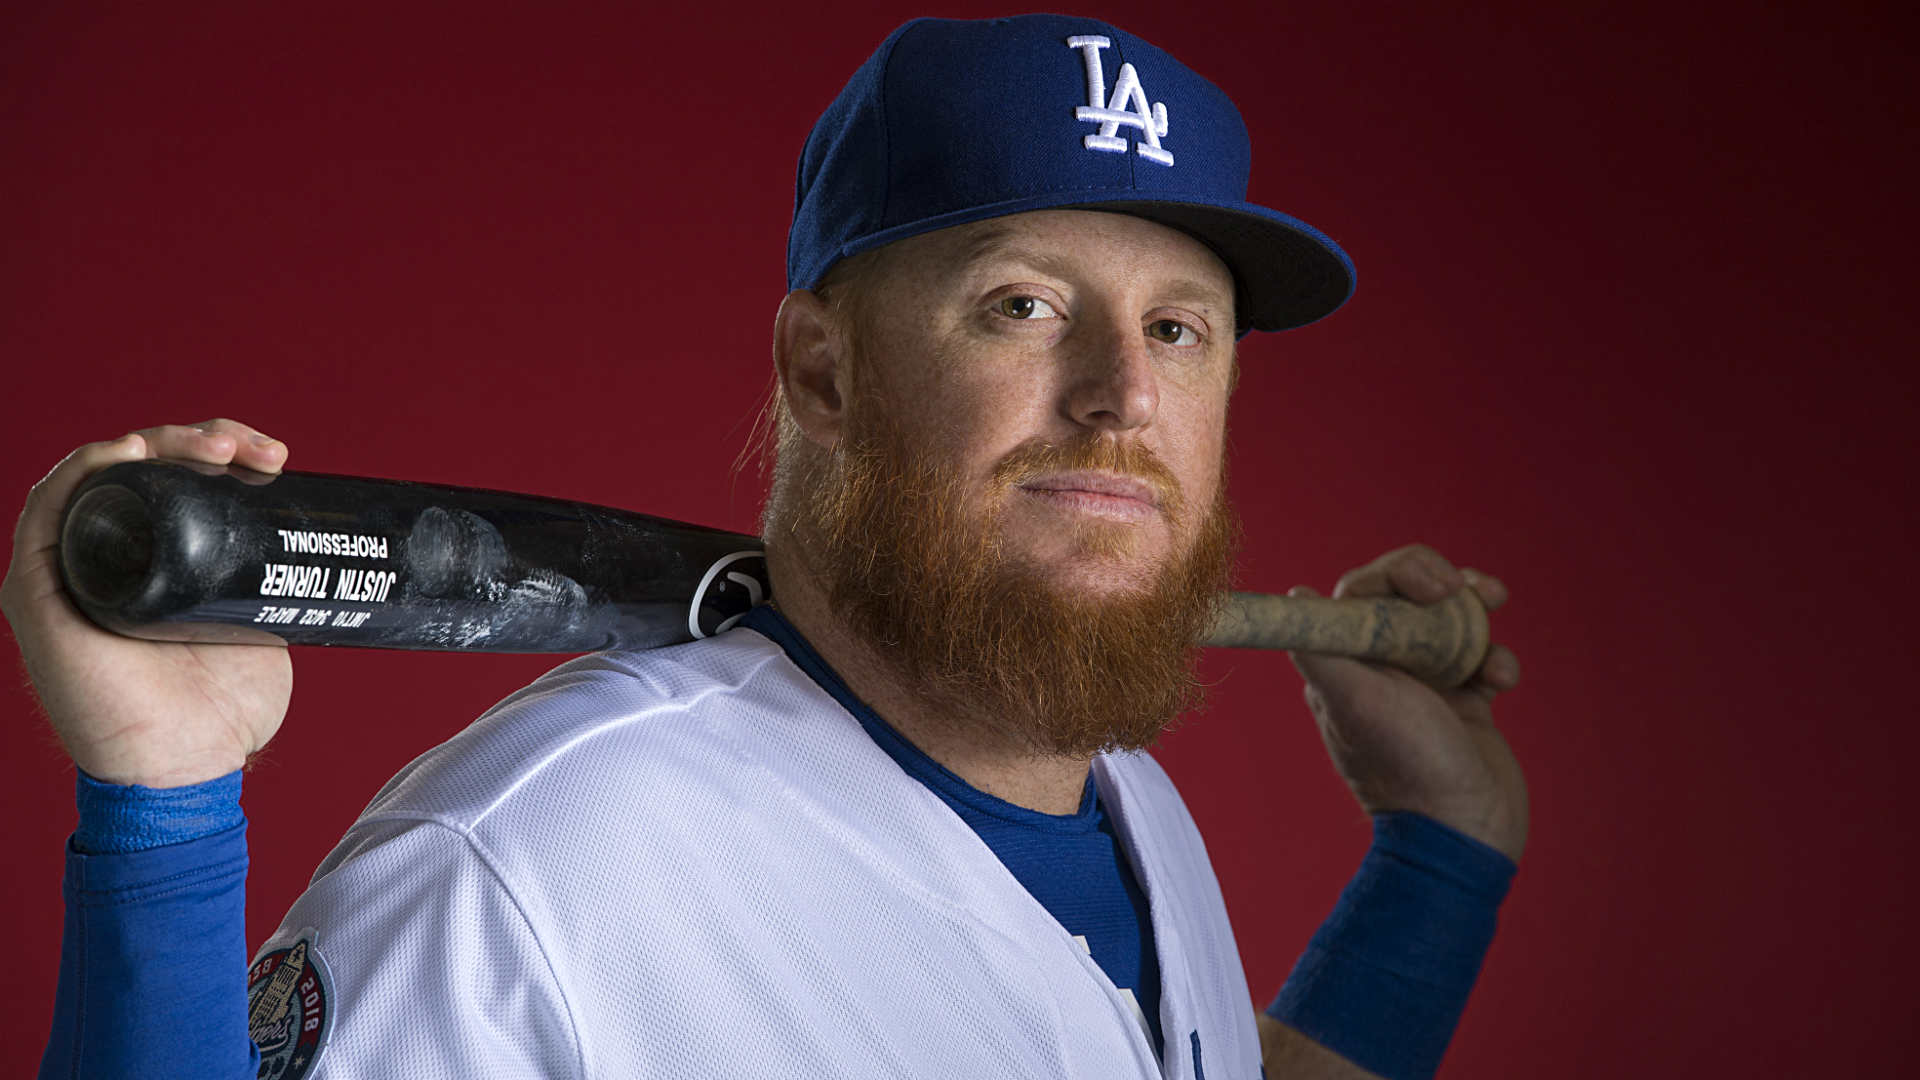 Dodgers' Justin Turner Breaks Wrist After Being Hit by Pitch